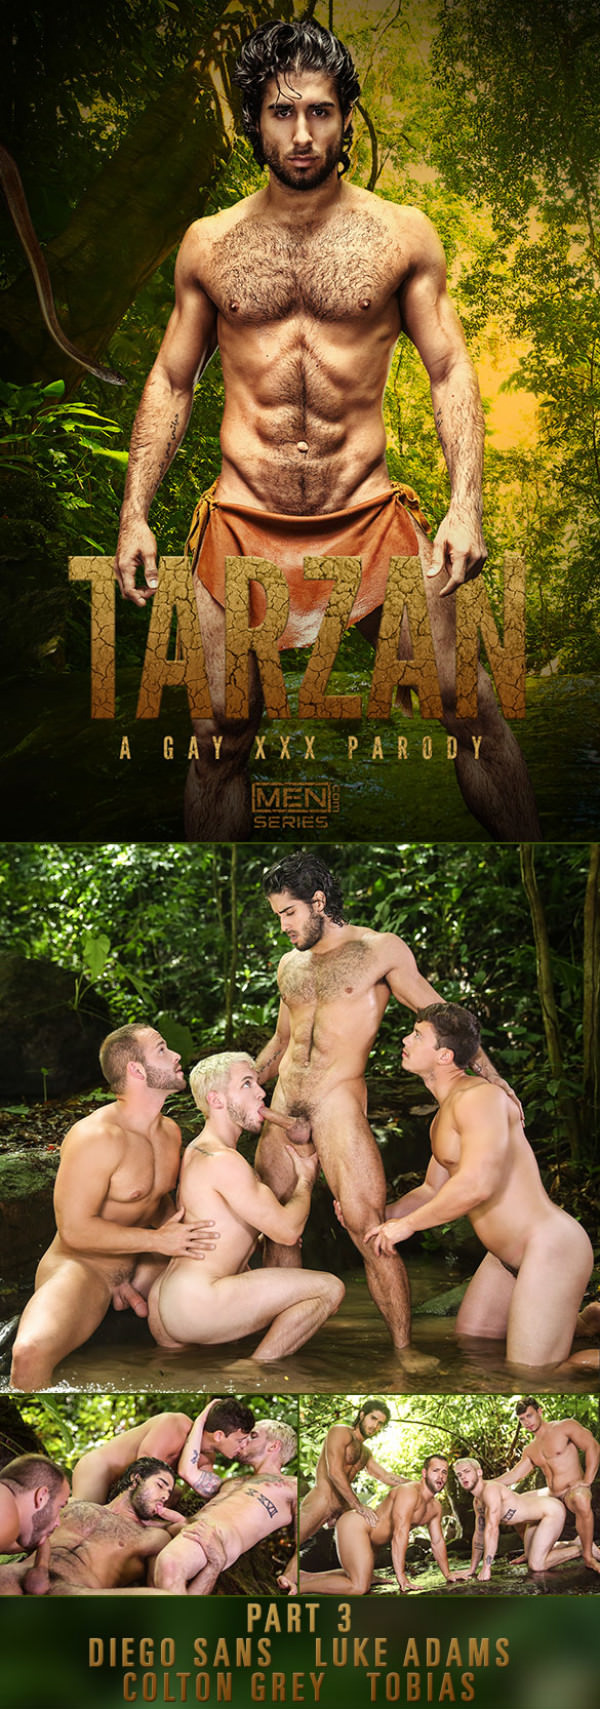 SuperGayHero Tarzan: A Gay XXX Parody, Part 3 Diego Sans and Tobias fuck Colton Grey and Luke Adams Men.com